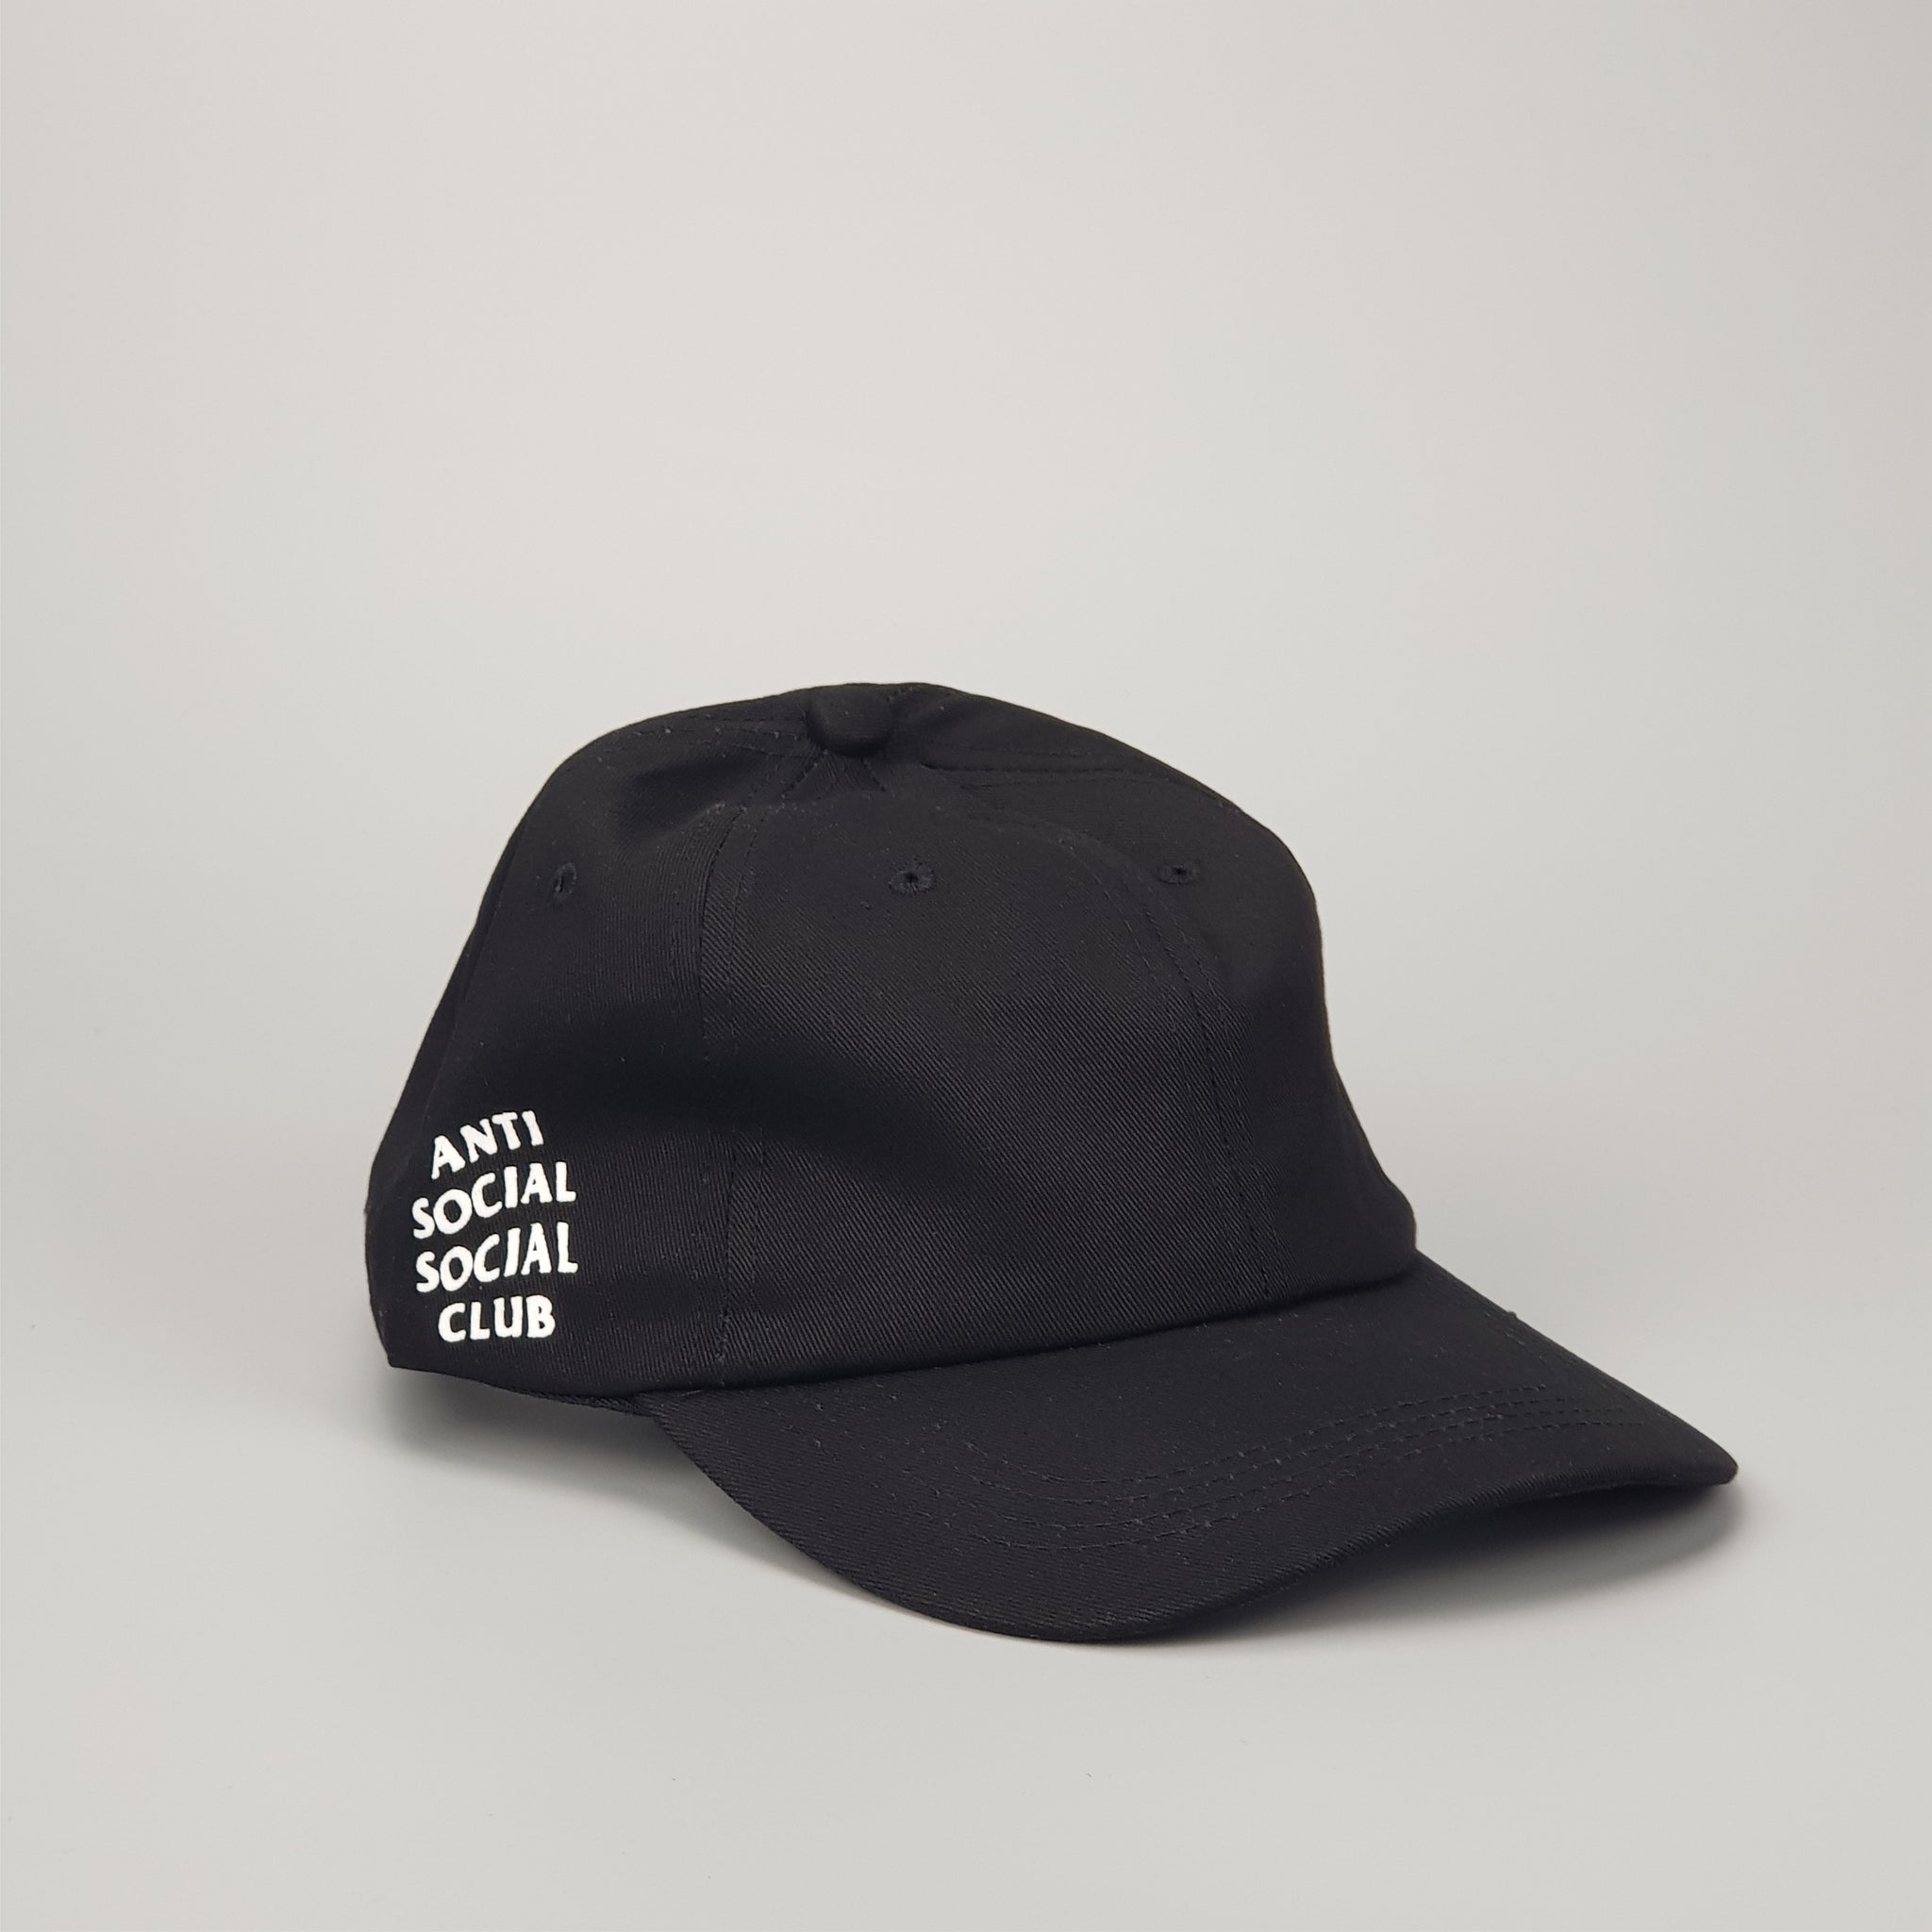 62cc2c8afab76 ... ASSC Weird Cap - Black - Low-Profile Store ...